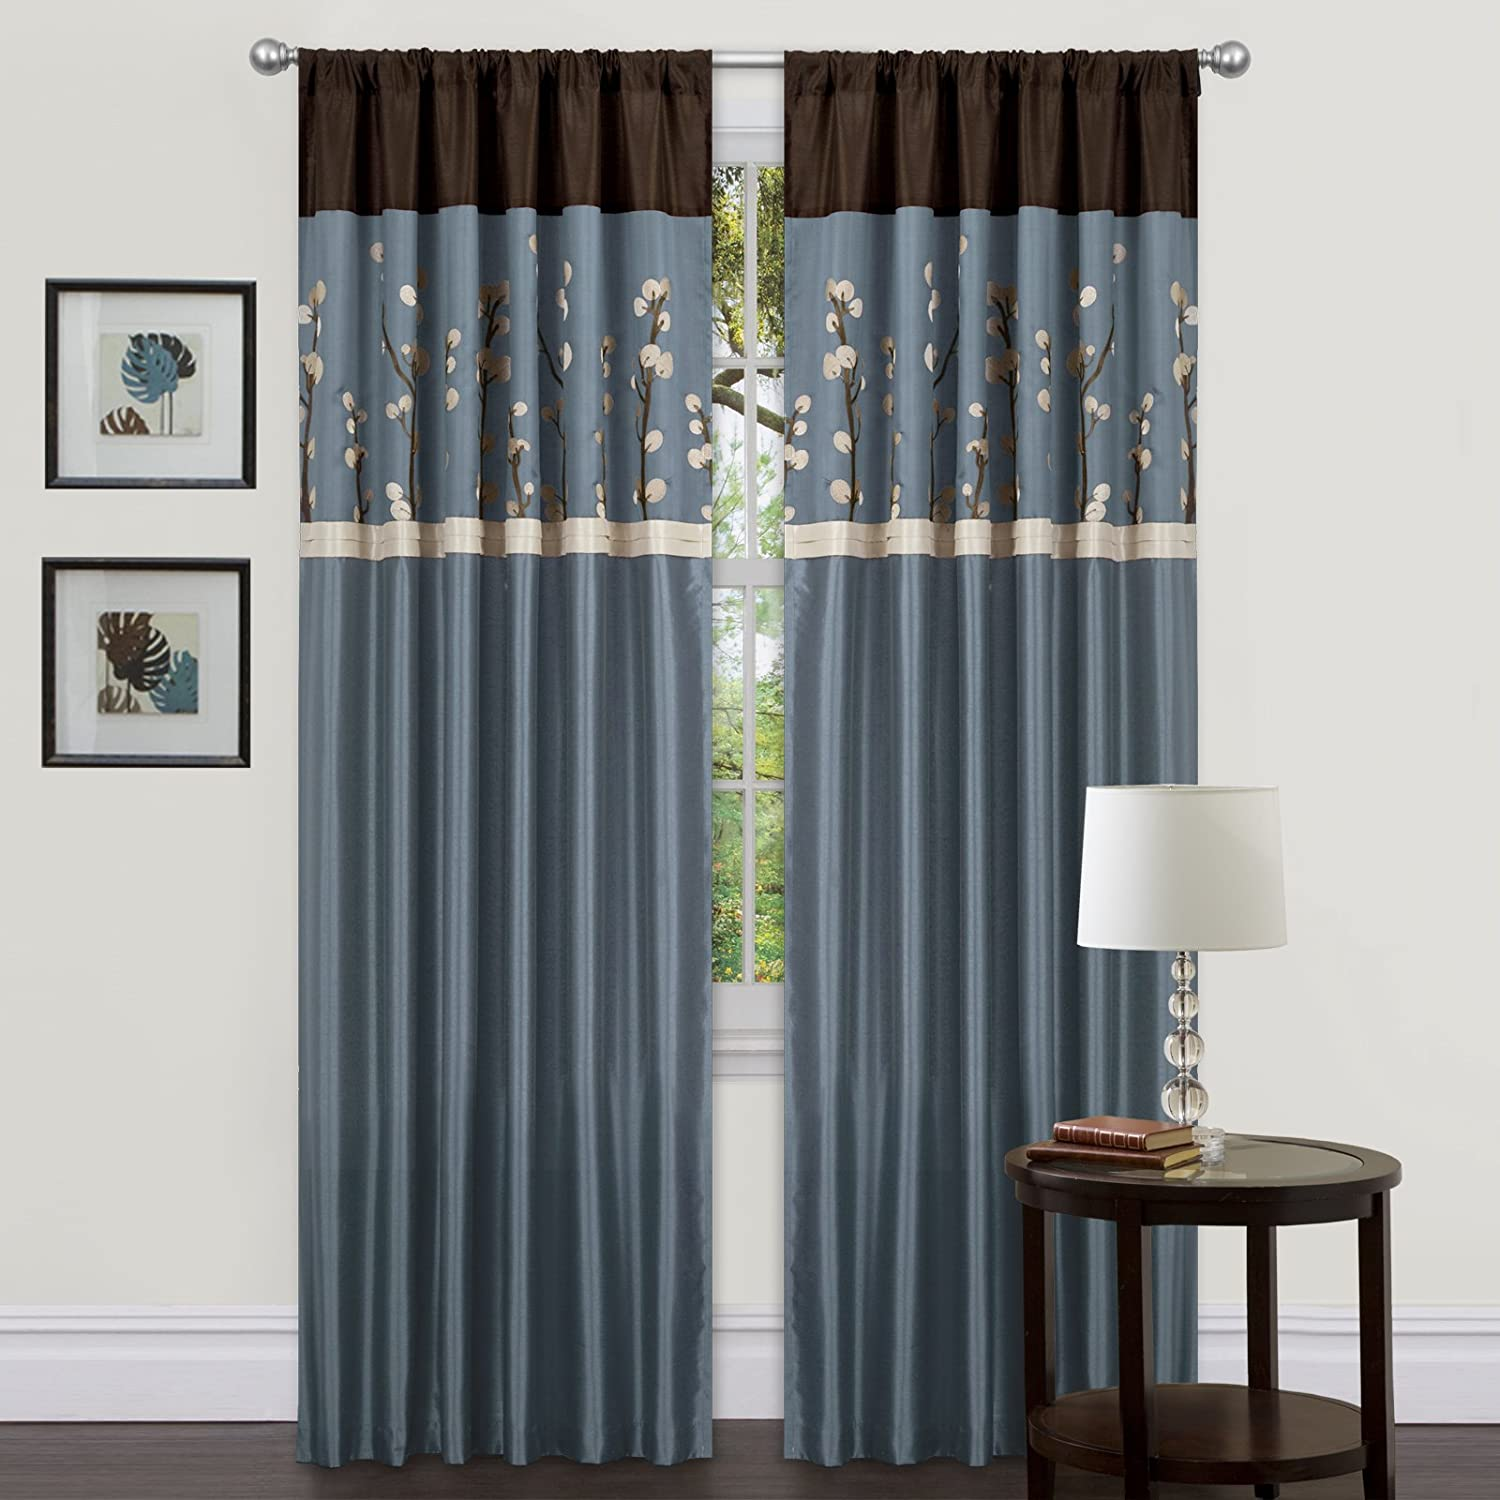 Blue And Brown Curtains Cheap Sale Ease Bedding With Style